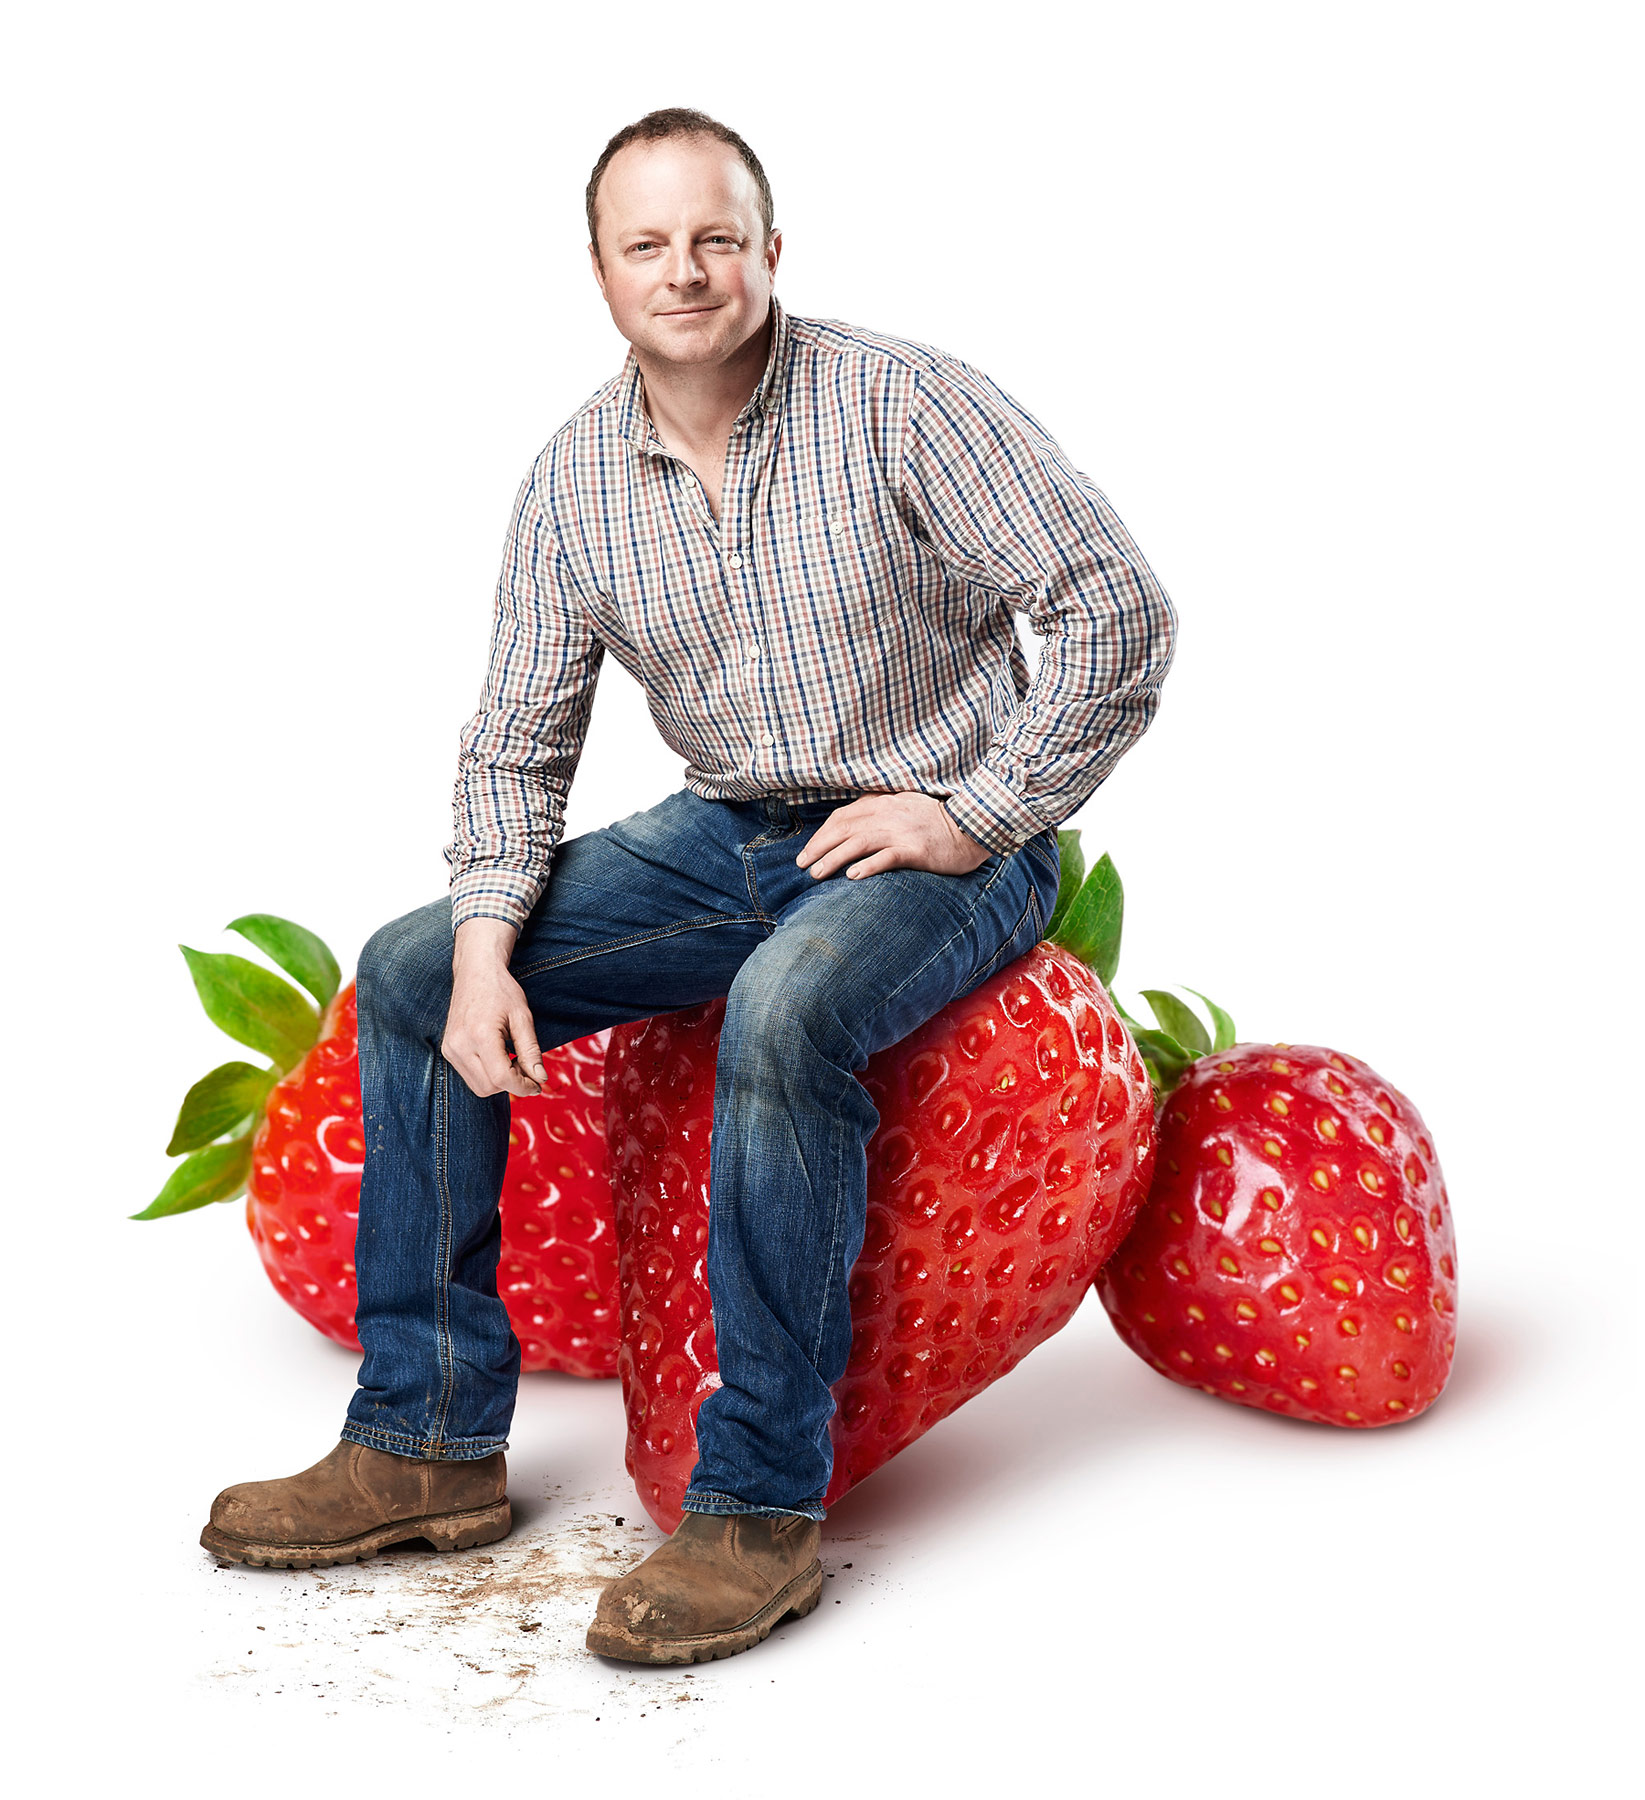 Farmer Charlie Tacon sitting on a giant strawberry